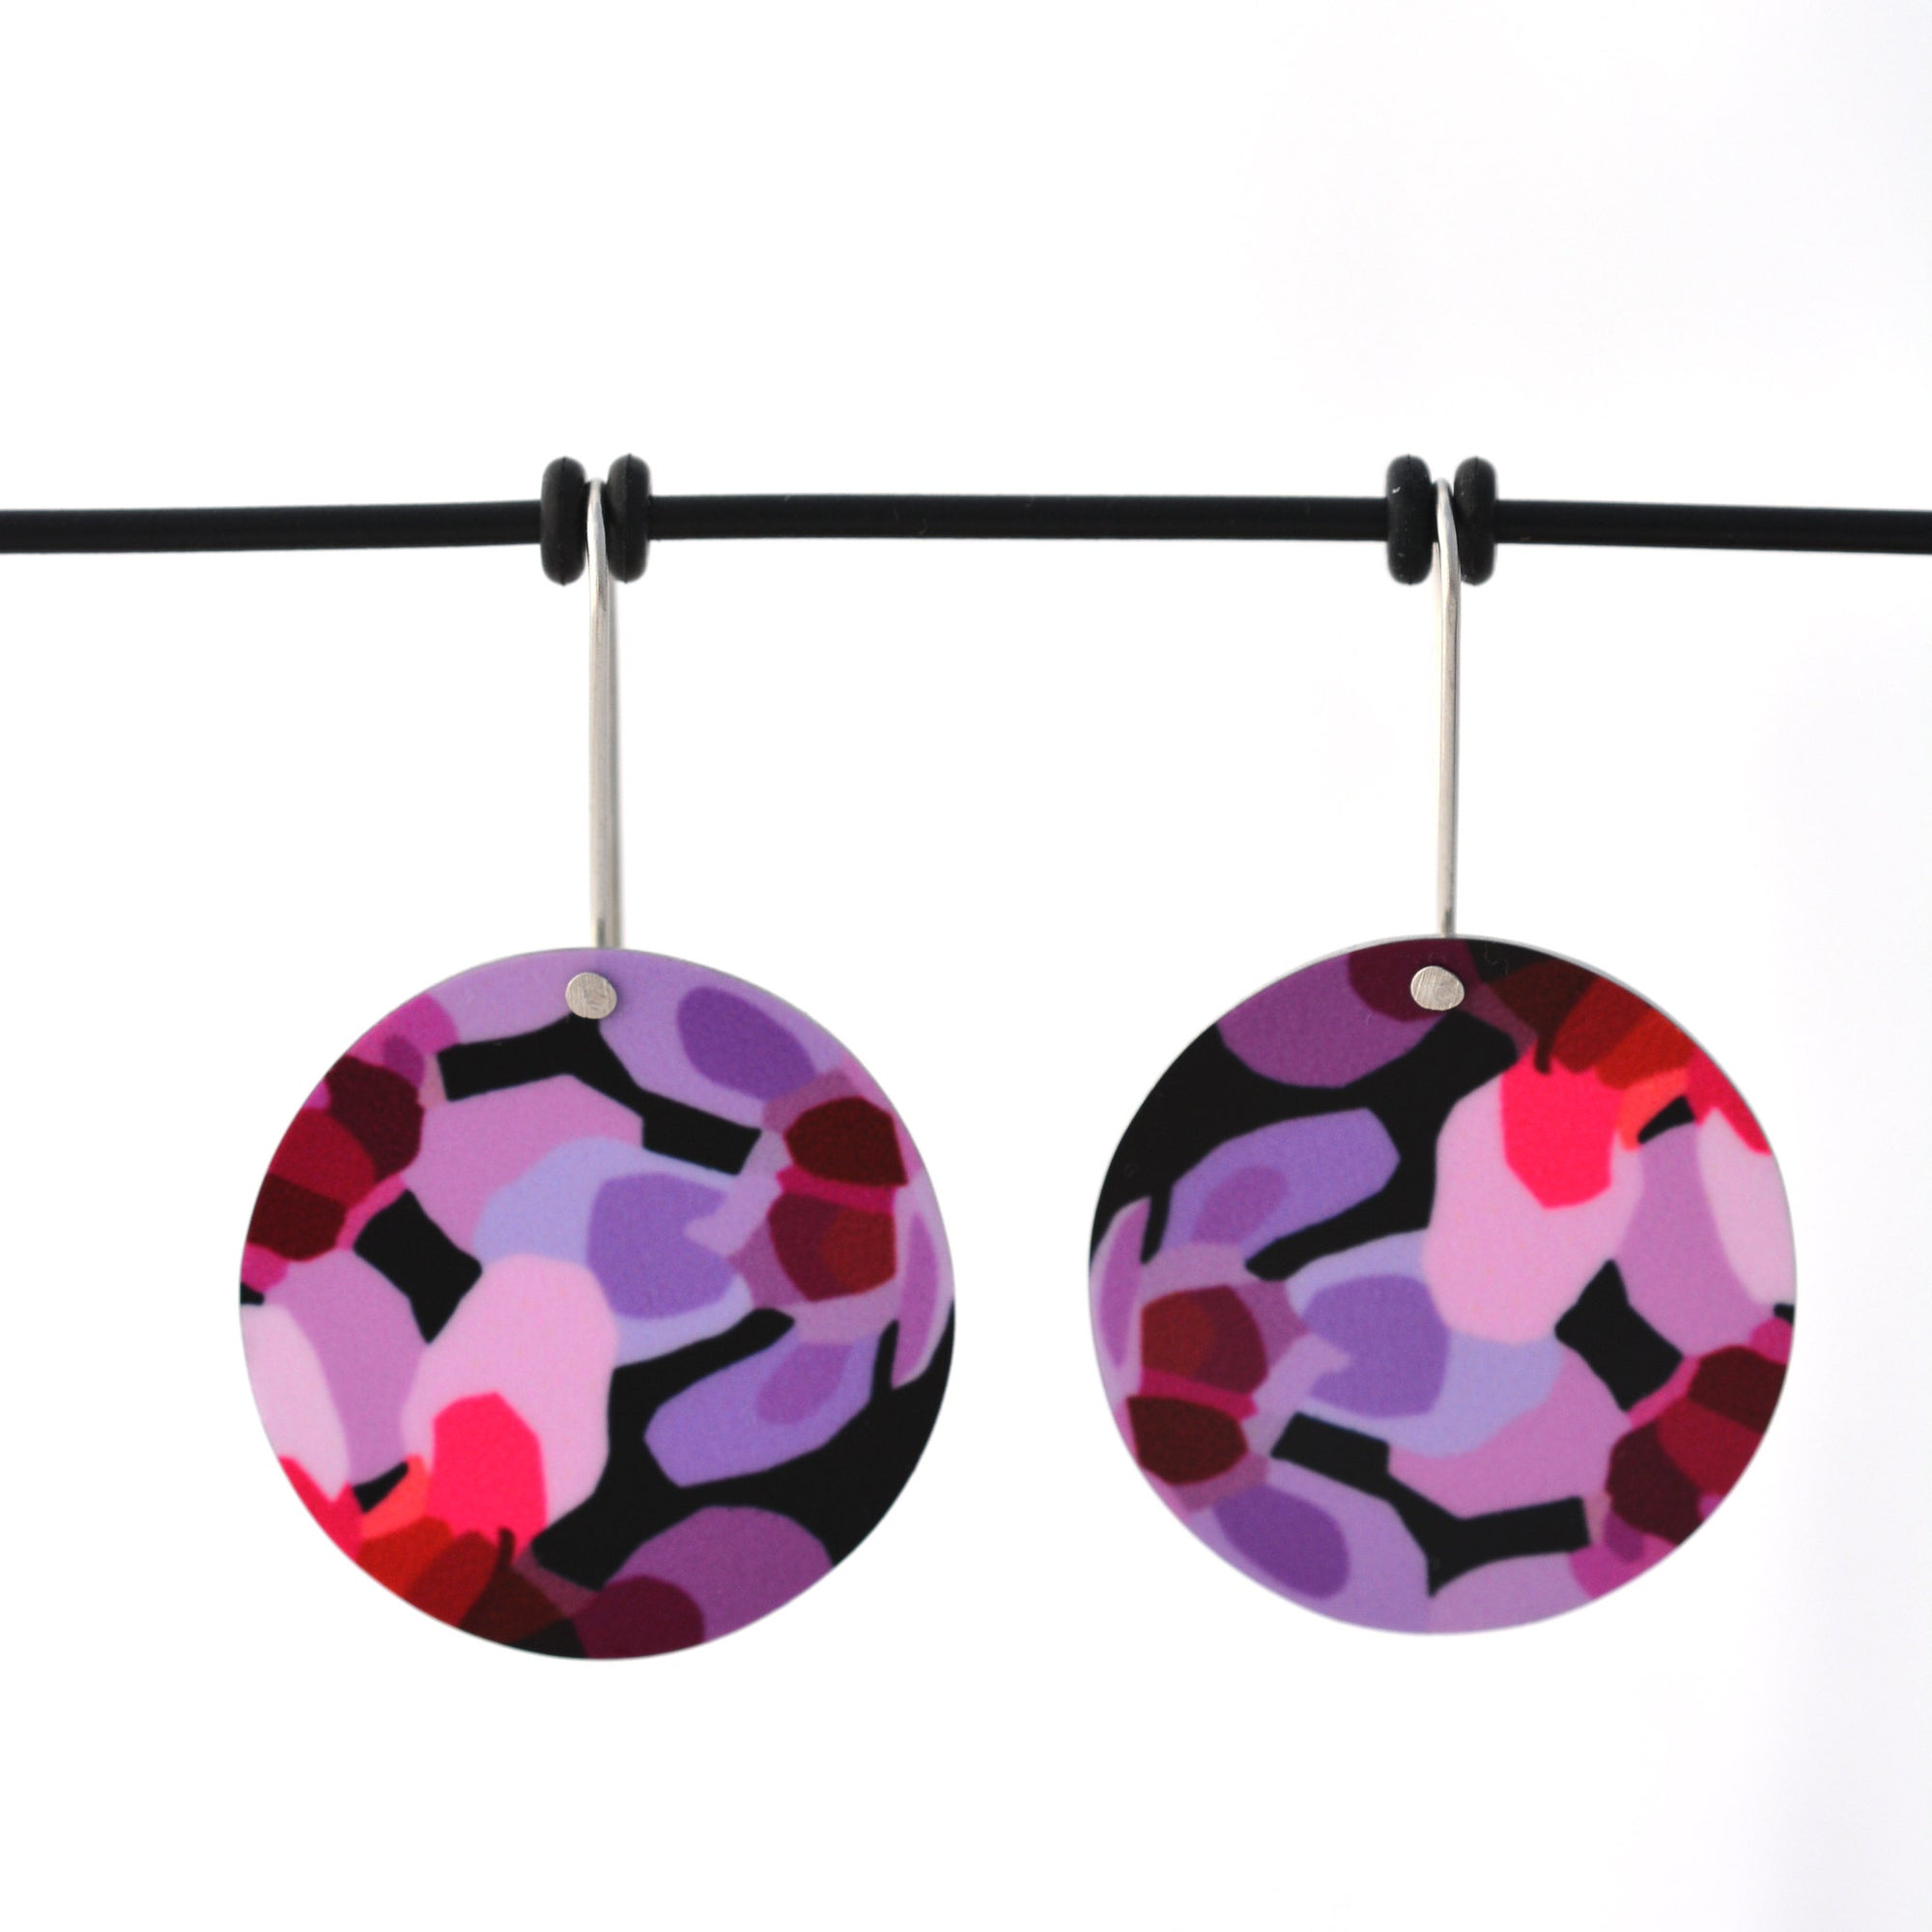 Circle earrings featuring pink Geraldton Wax flowers on a black background. The aluminium earrings discs are approximately 26mm in diameter and the surgical stainless steel shepherds hooks are 15mm in length.